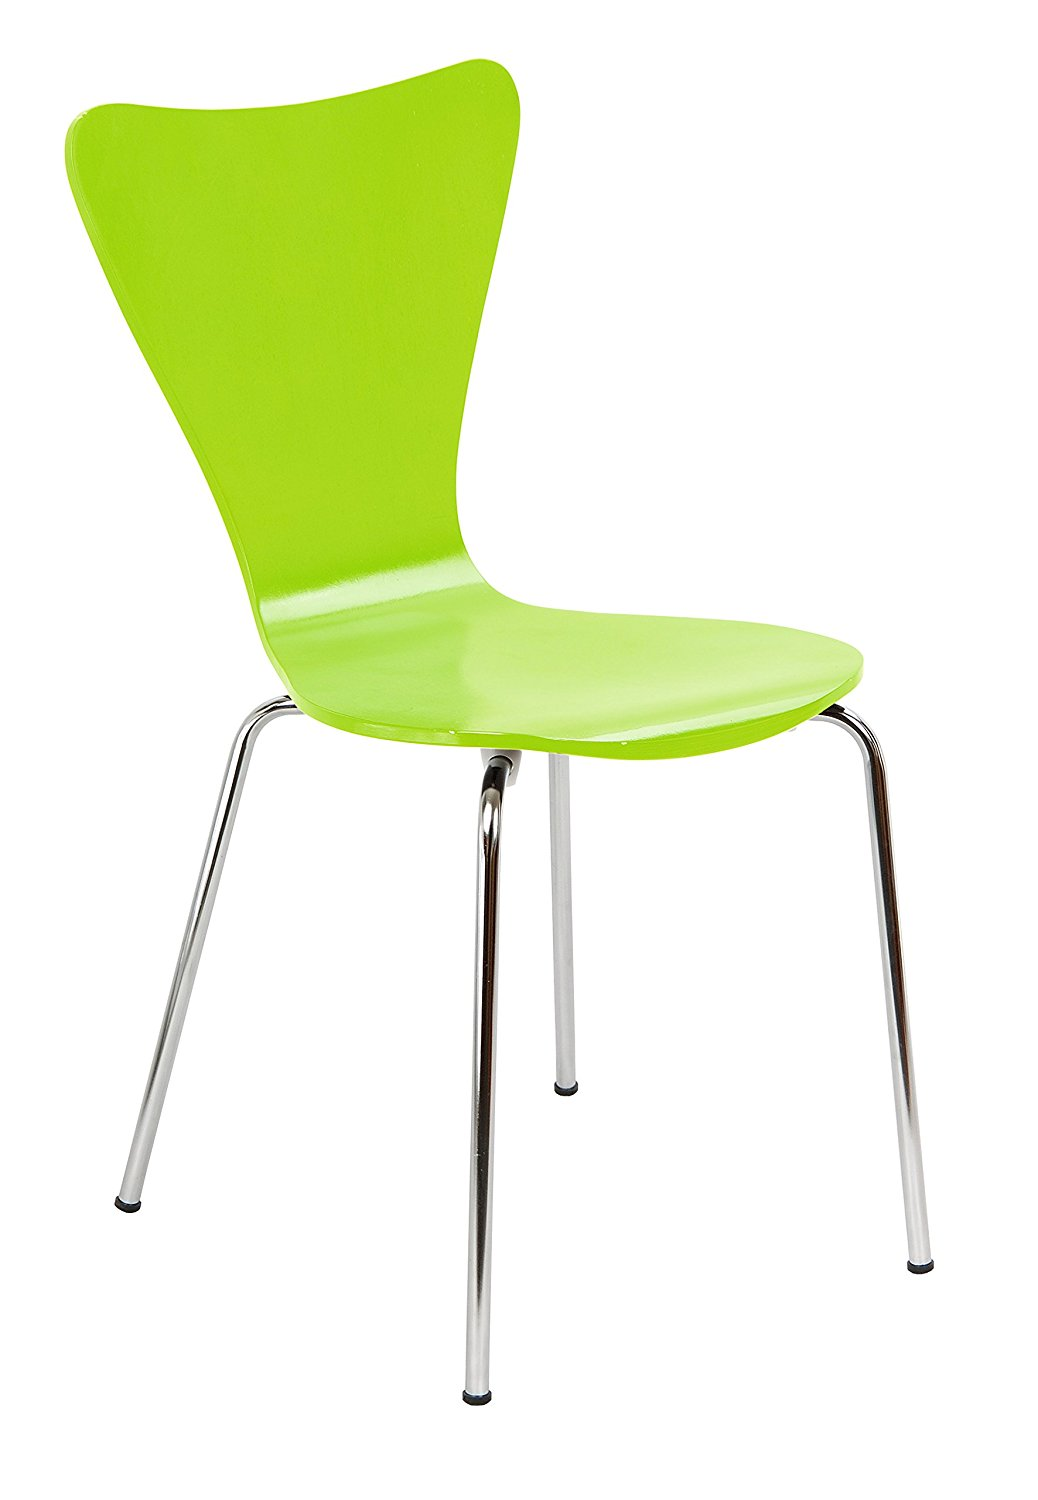 Lime Green Chairs Legare Furniture Perfect Sit Bent Ply Chair Lime Green